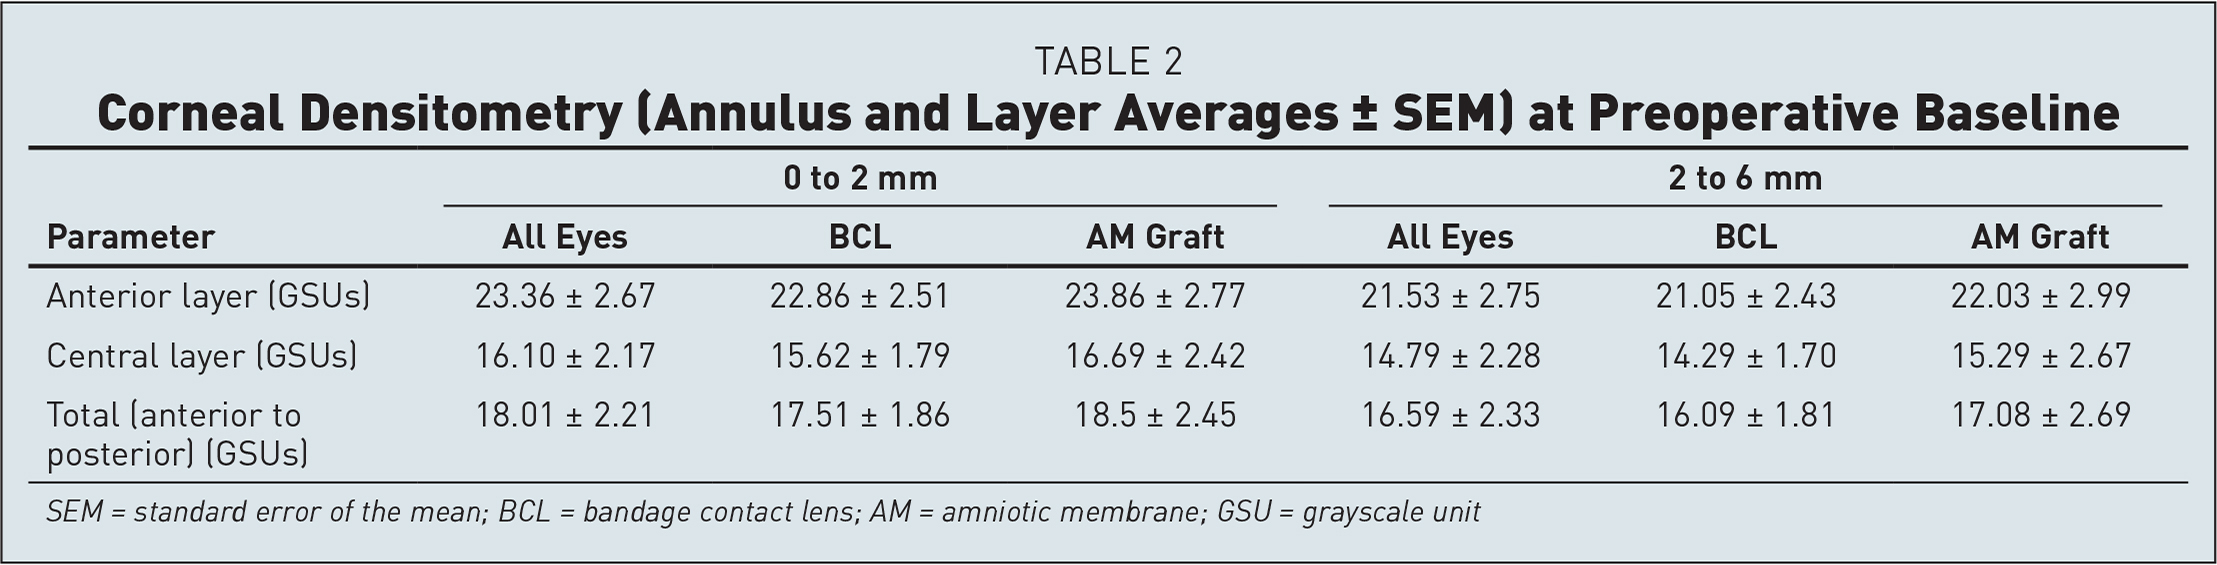 Corneal Densitometry (Annulus and Layer Averages ± SEM) at Preoperative Baseline